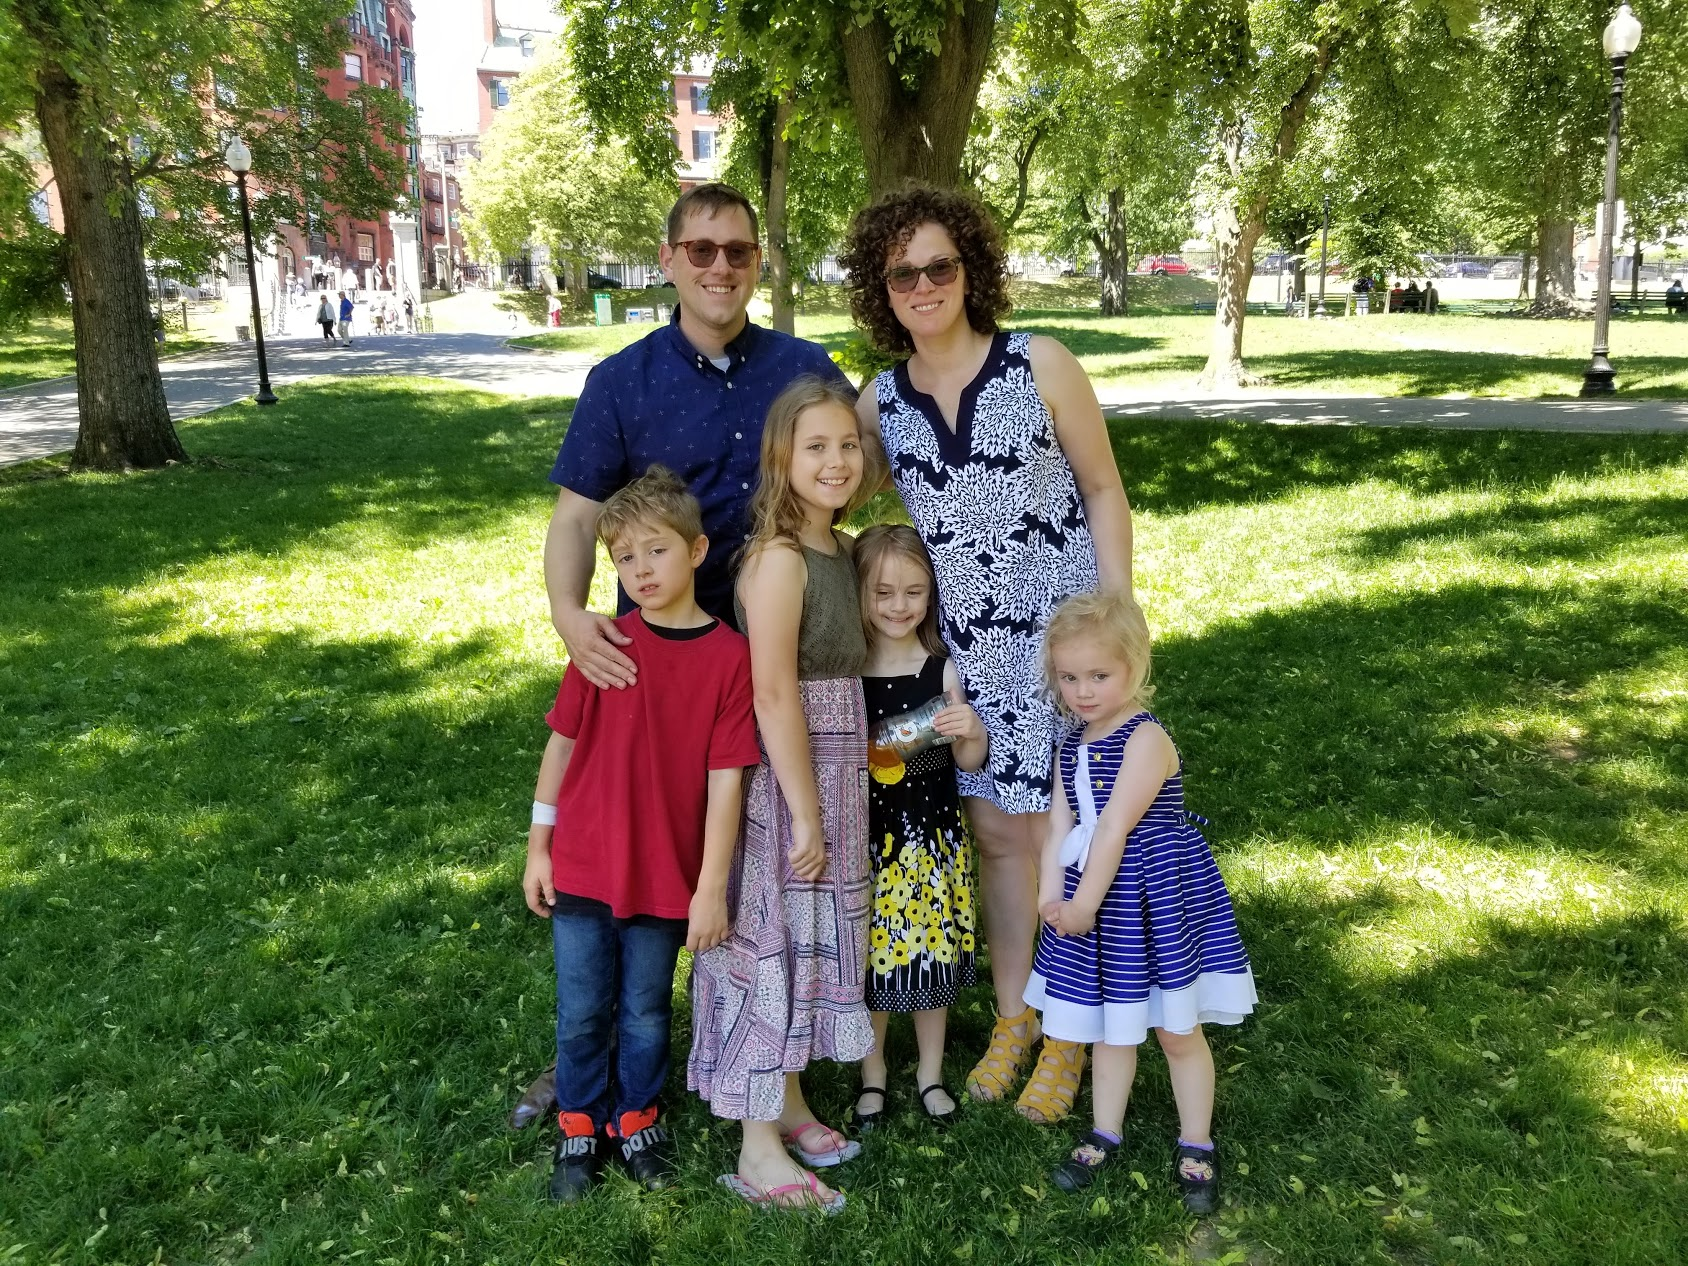 Logan, Melissa and their four children live and minister to the community of Jamaica Plain. For more information about their congregation, visit  https://www.ctkjproxbury.org/ .